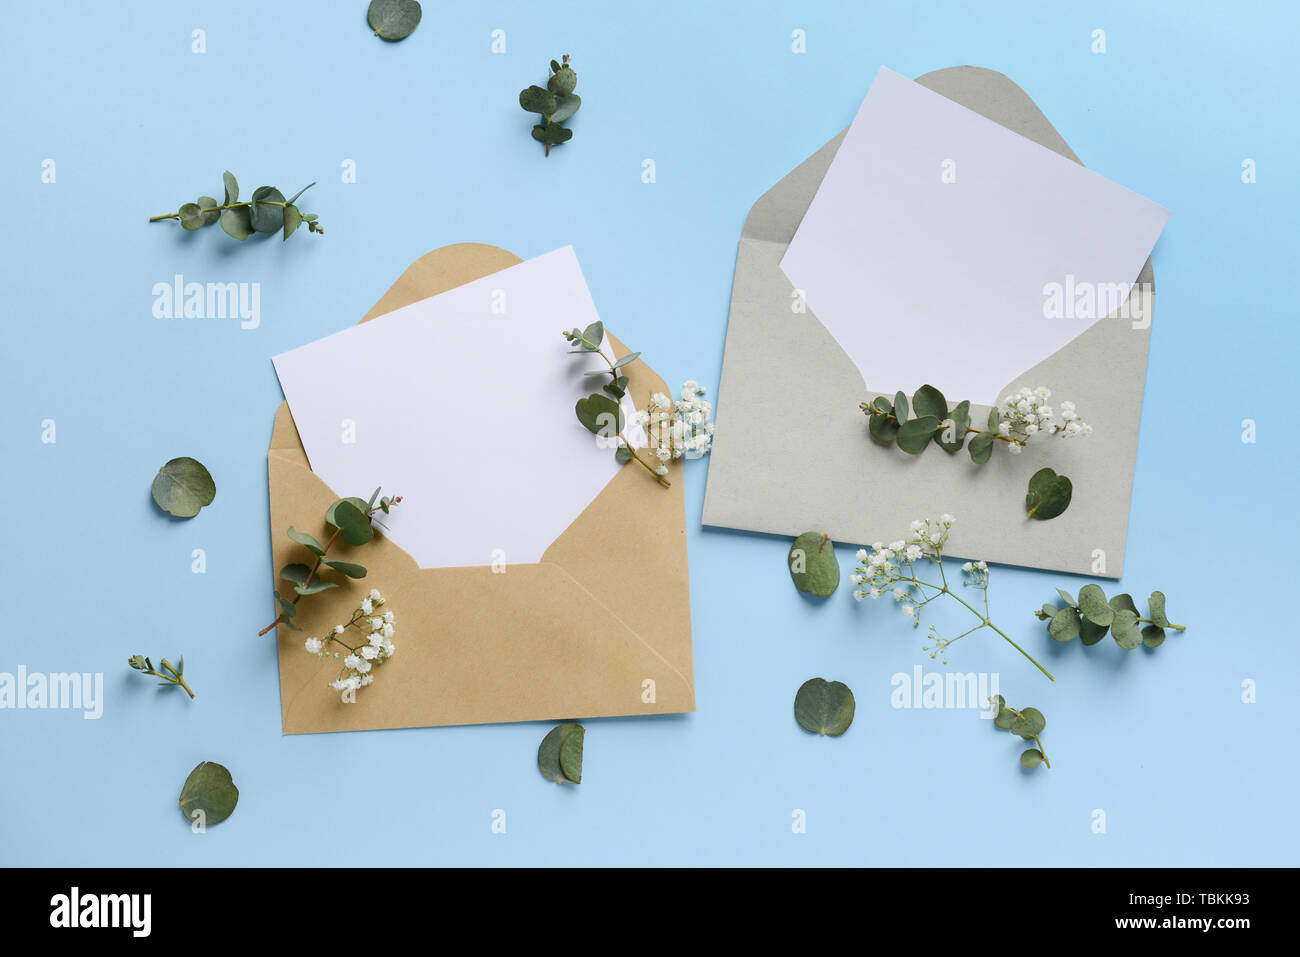 Mockups of invitations on color background Stock Photo